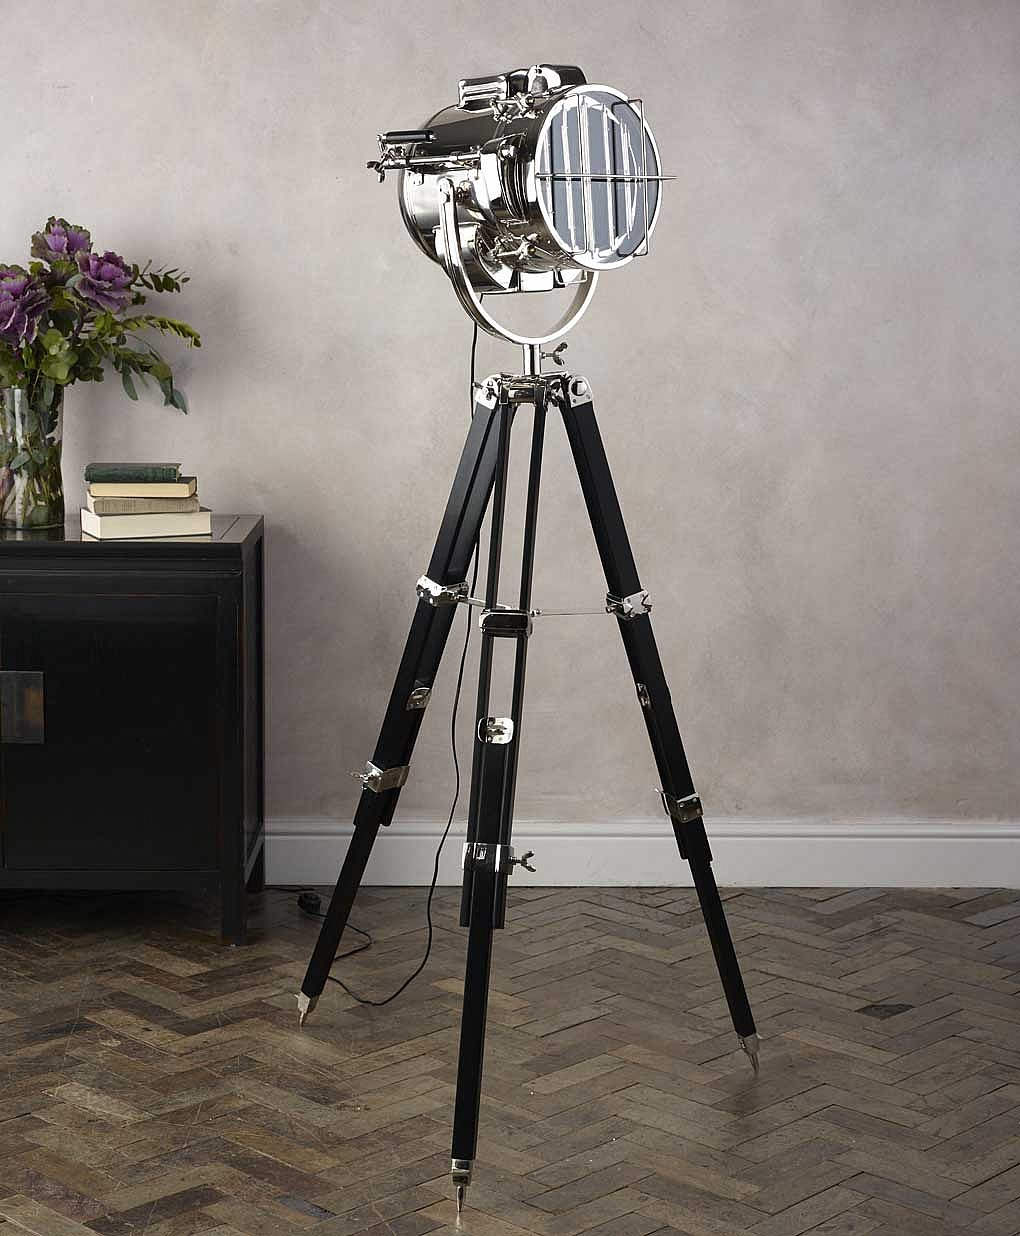 Awesome Tripod Lamp for Interior Lighting Ideas: Target Tripod Floor Lamp | Tripod Lamp | Potterybarn Floor Lamp